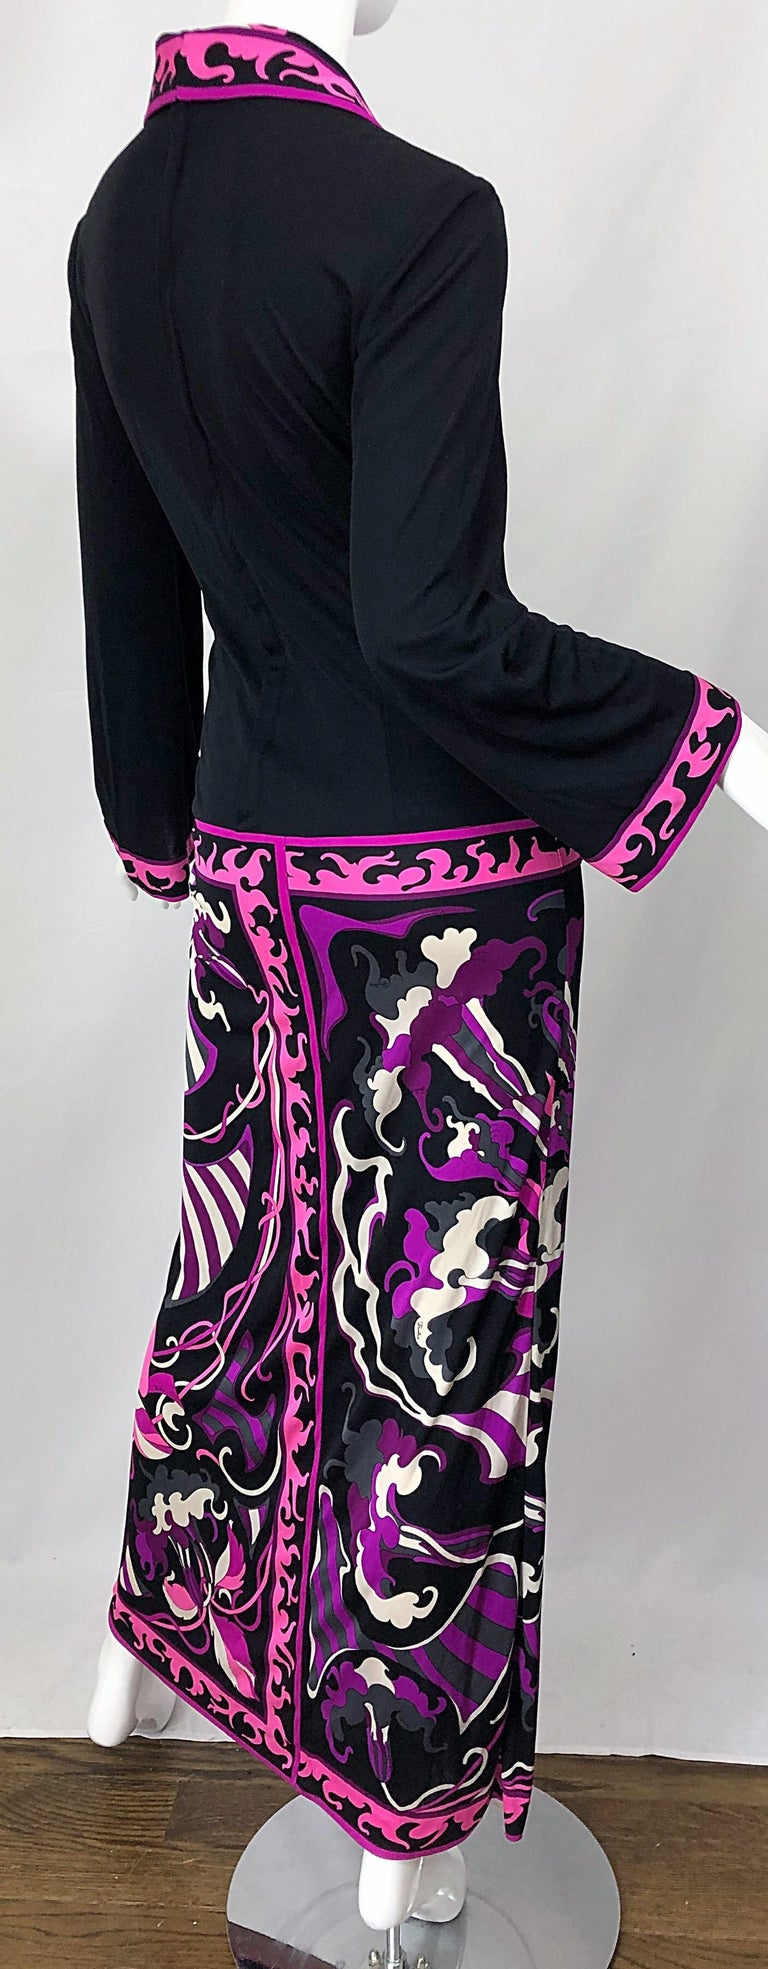 Emilio Pucci 1970s Silk Jersey Pink Purple Black Vintage 70s Maxi Dress For Sale 4